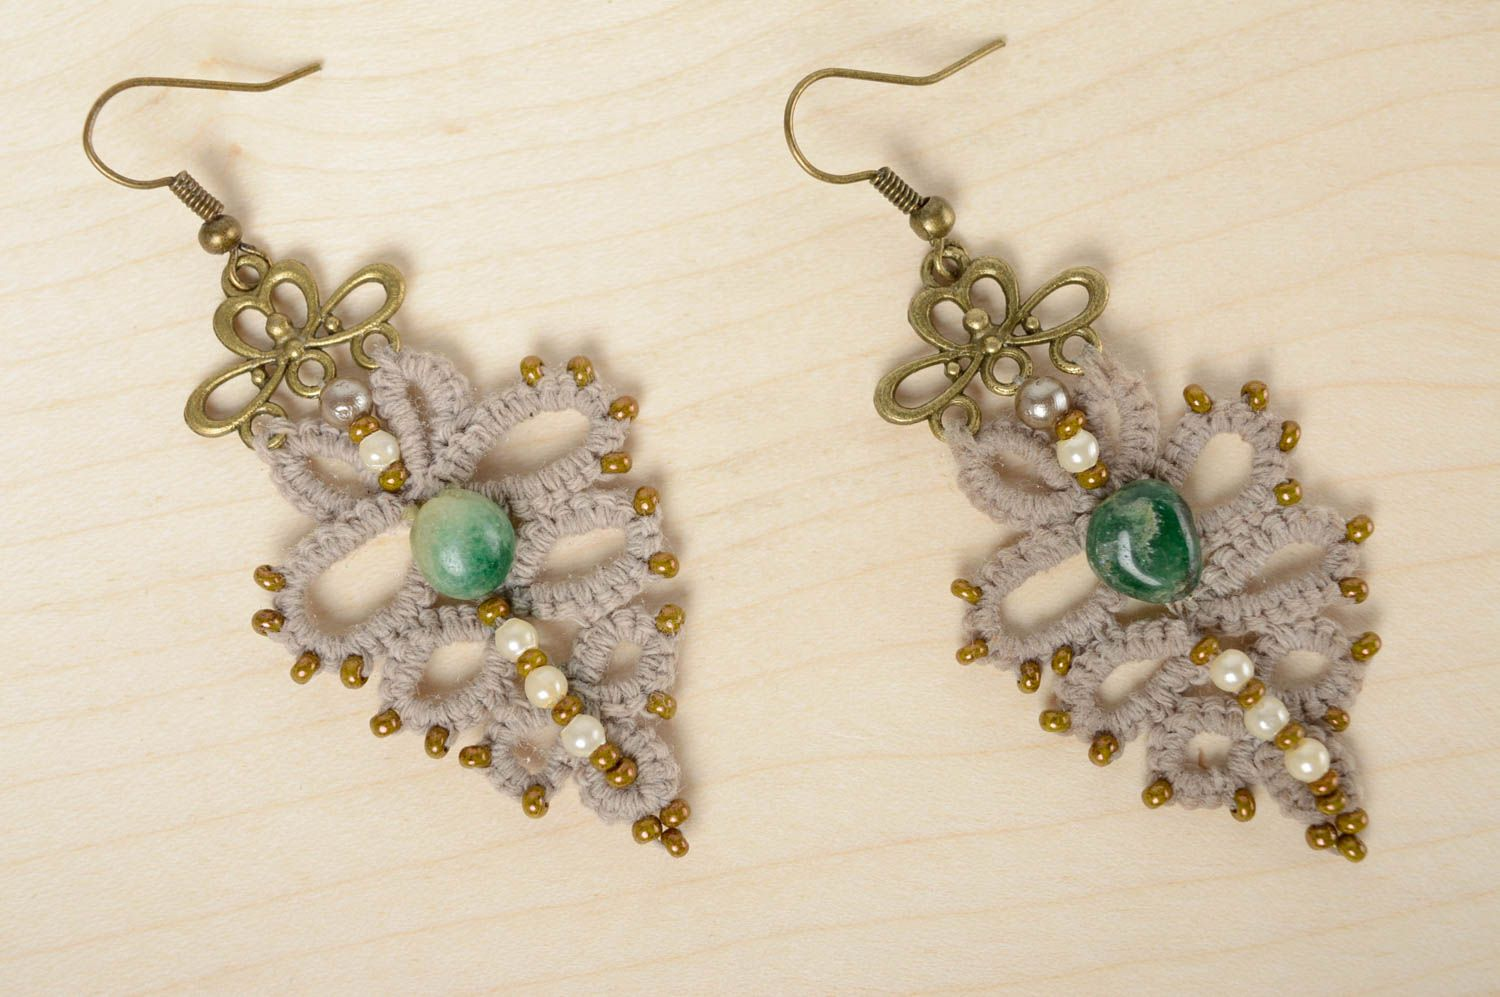 Crochet tatting earrings with natural stone photo 2